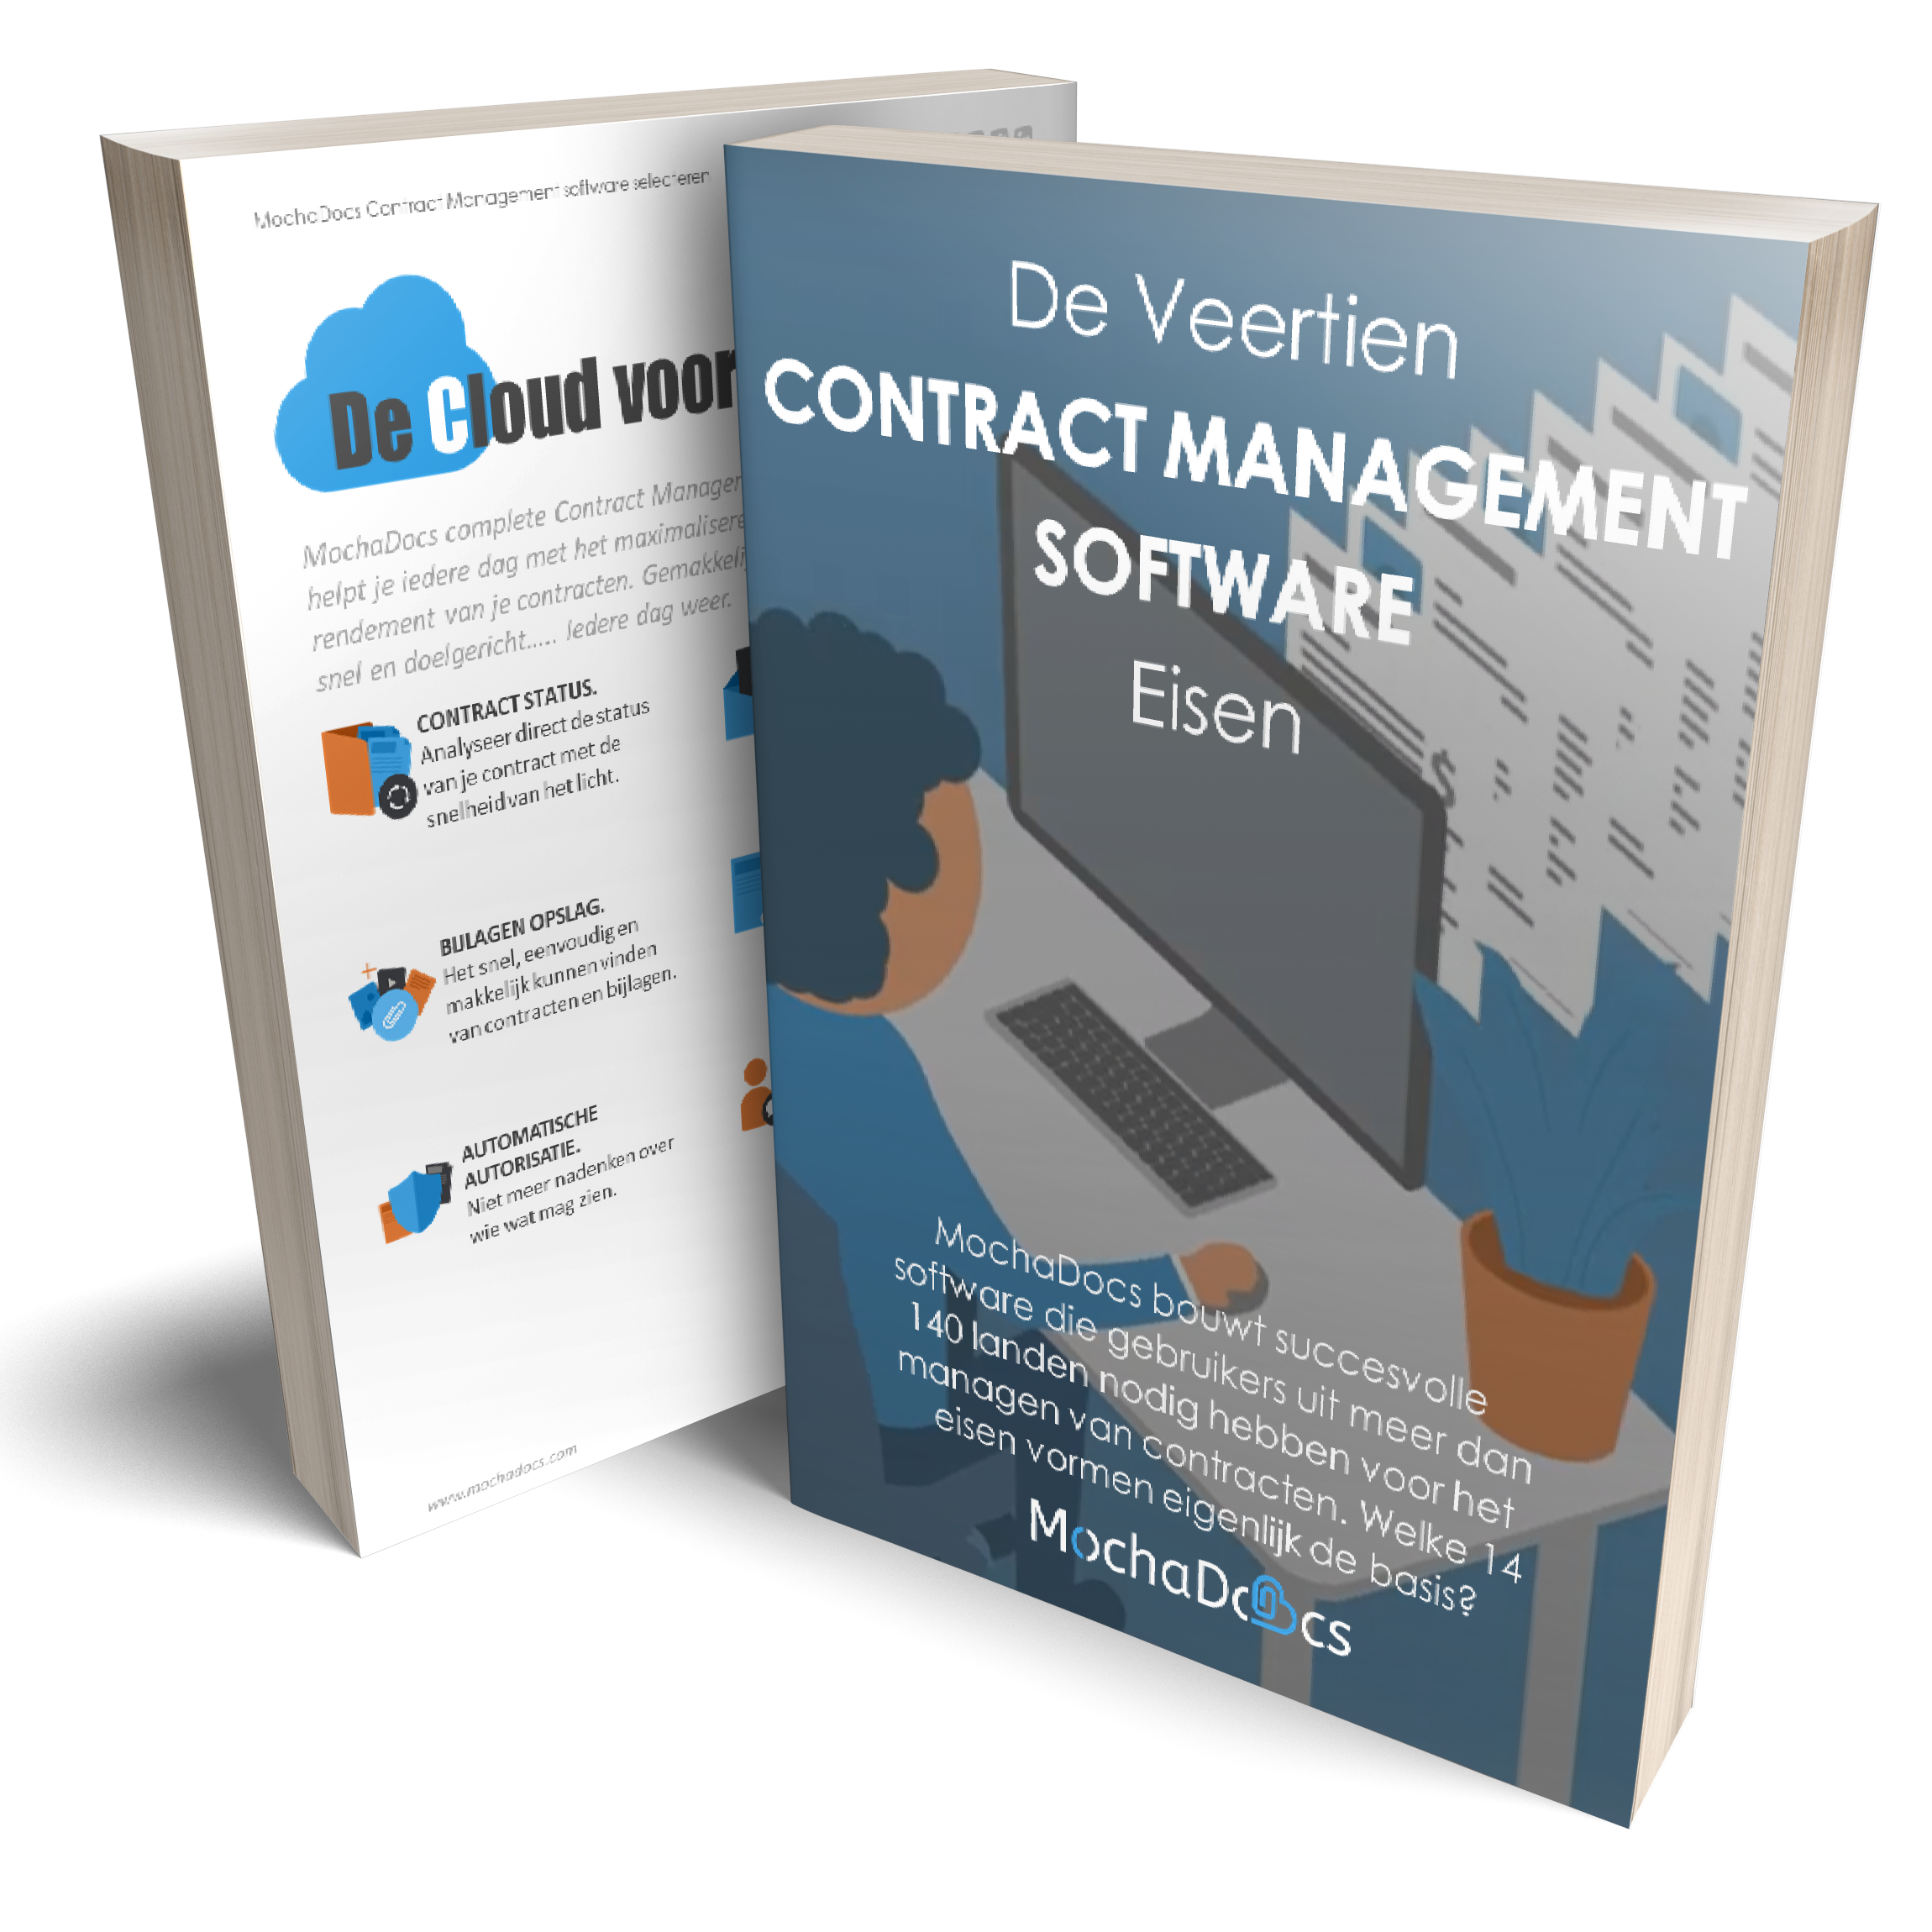 Waarop selecteer je contract management software?